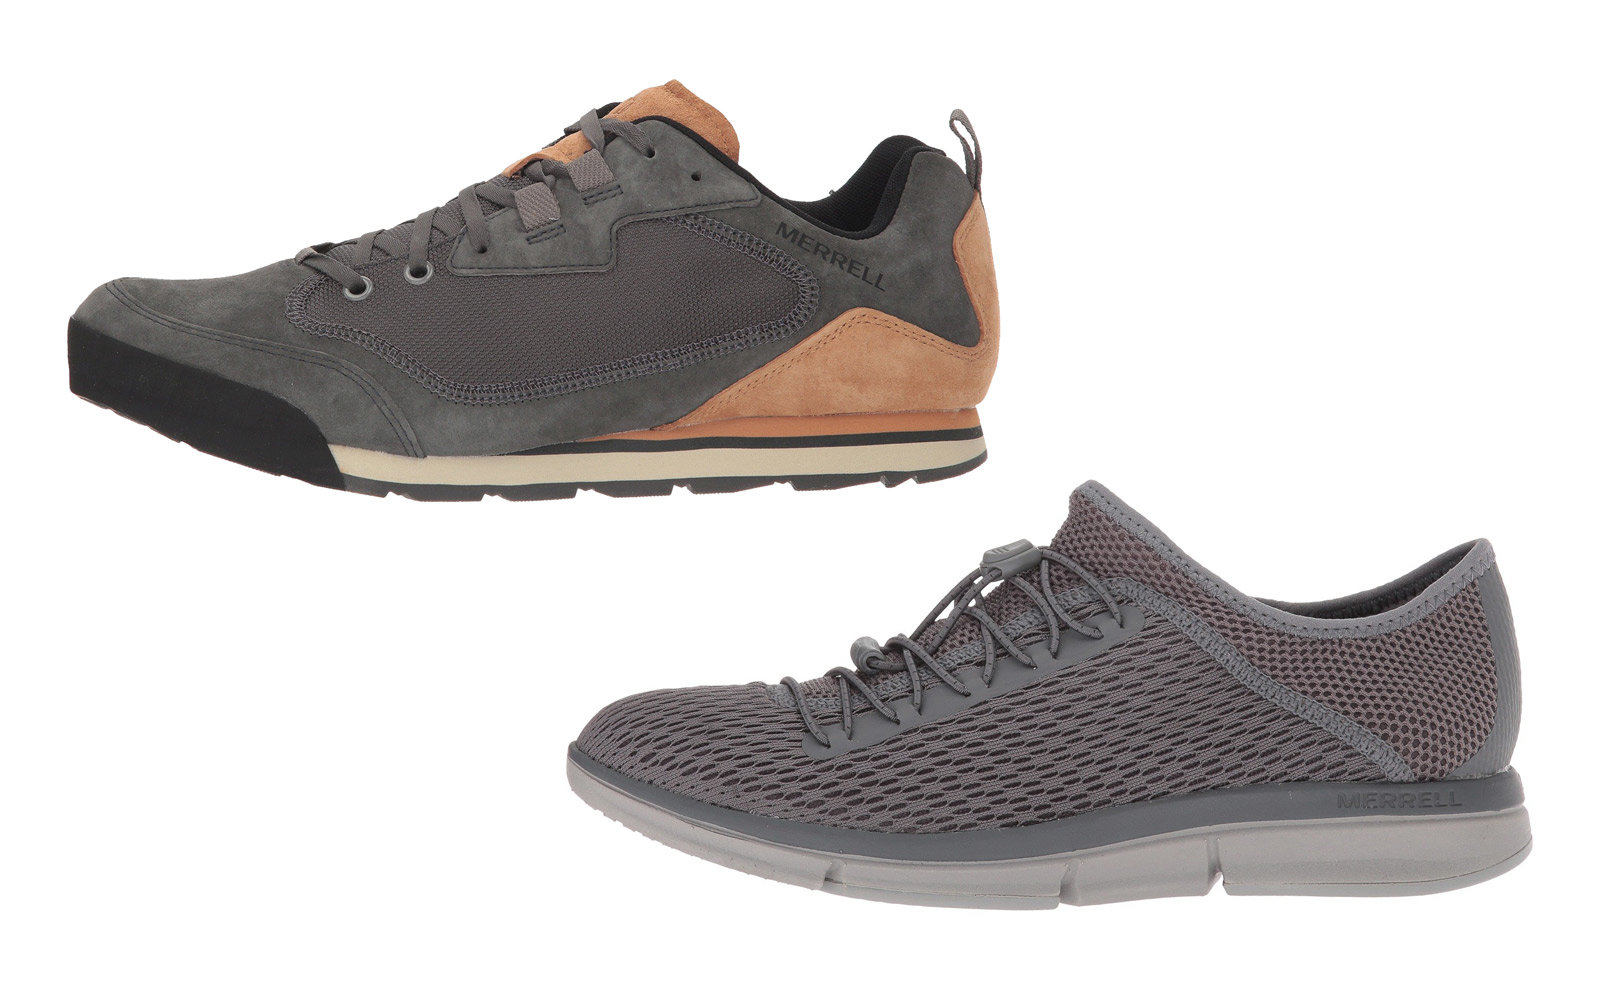 Comfort Shoes recommend